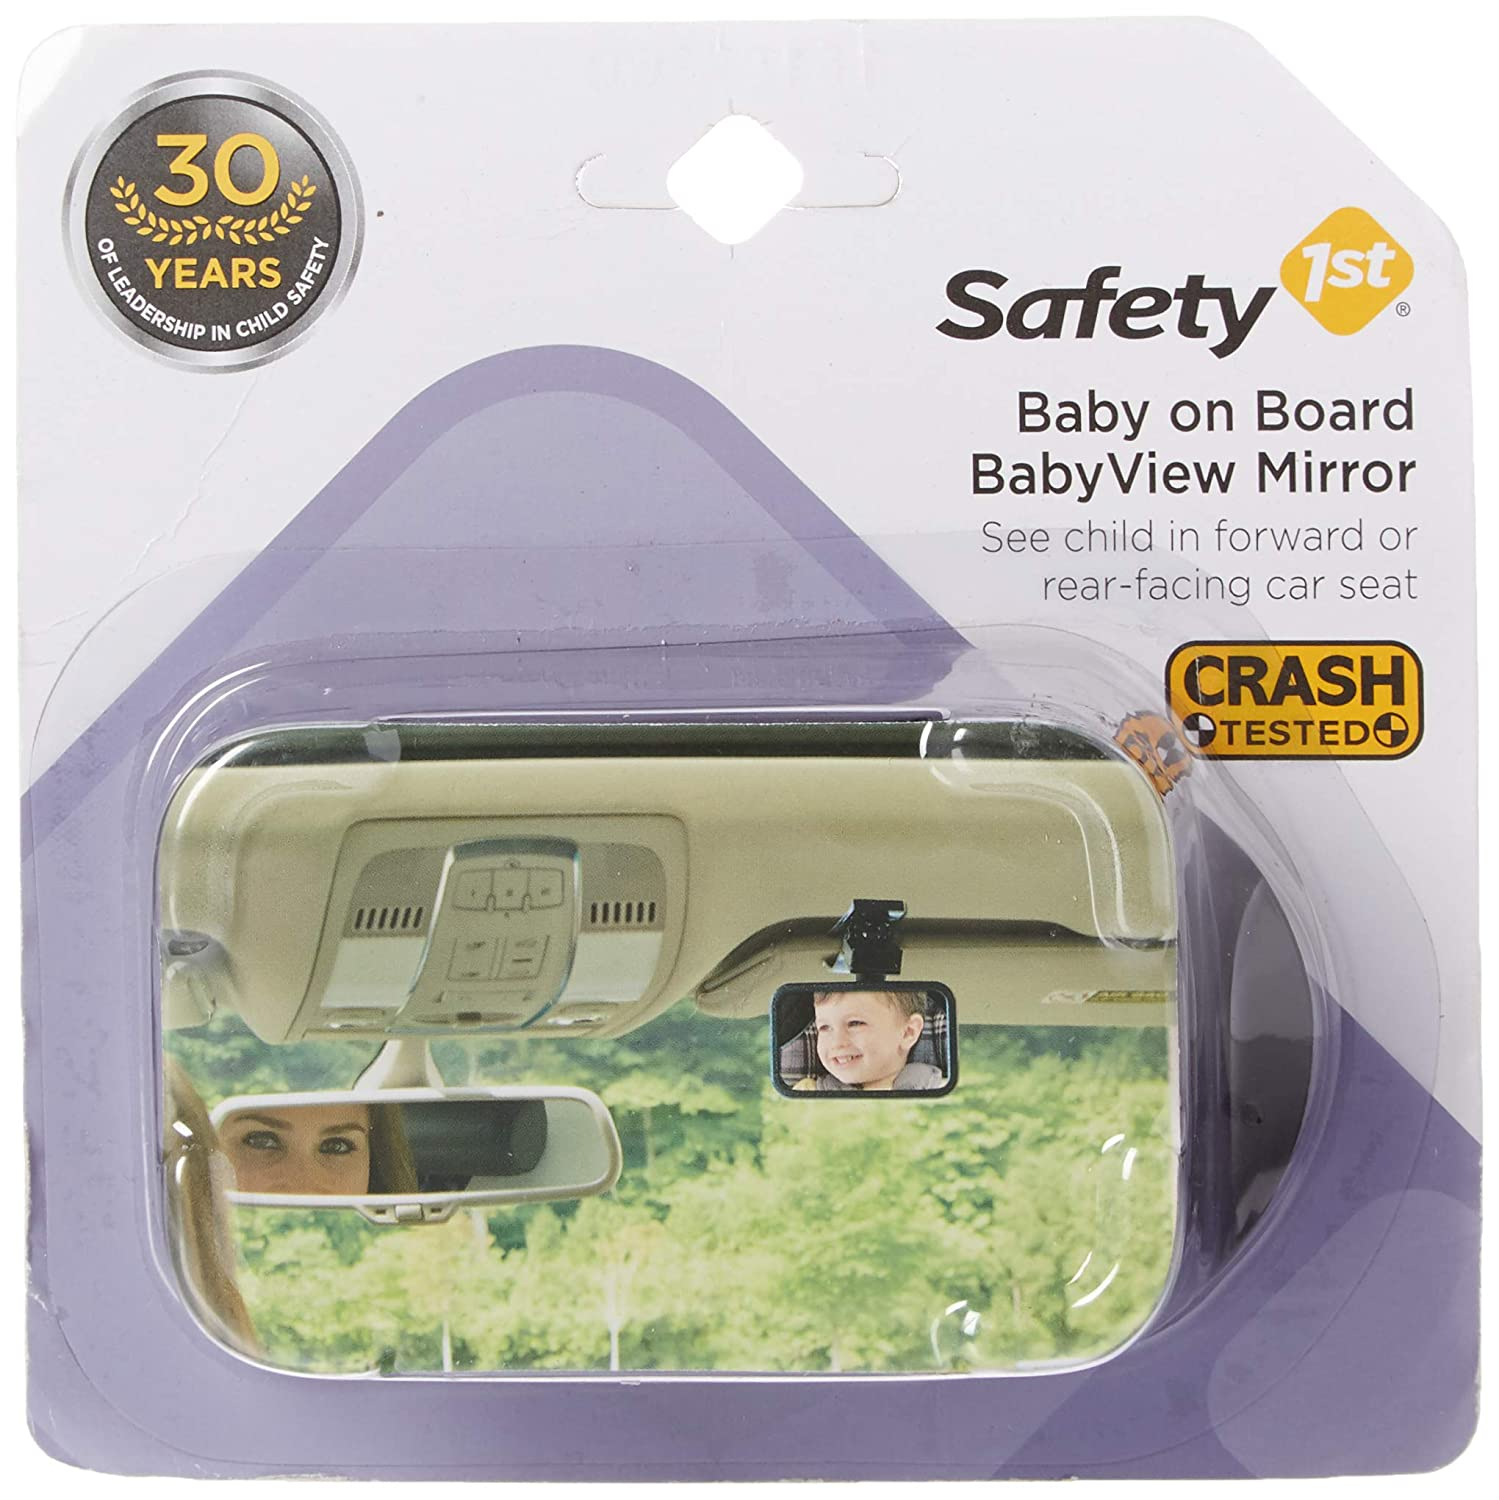 Safety 1st 48919/224 Baby on Board Front or Back Babyview Mirror